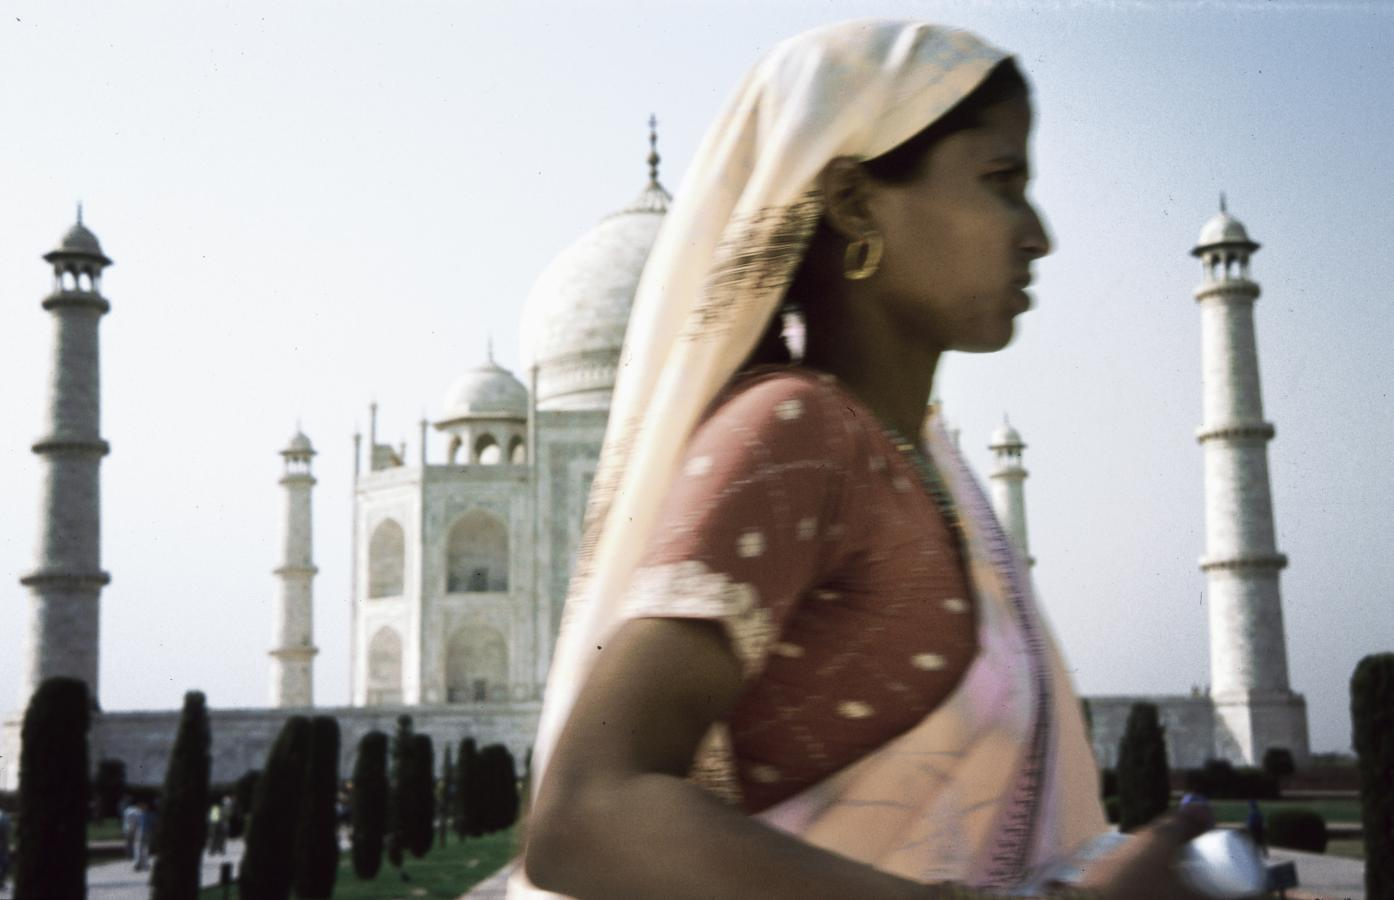 woman-in-front-of-the-taj-mahal-agra-2003